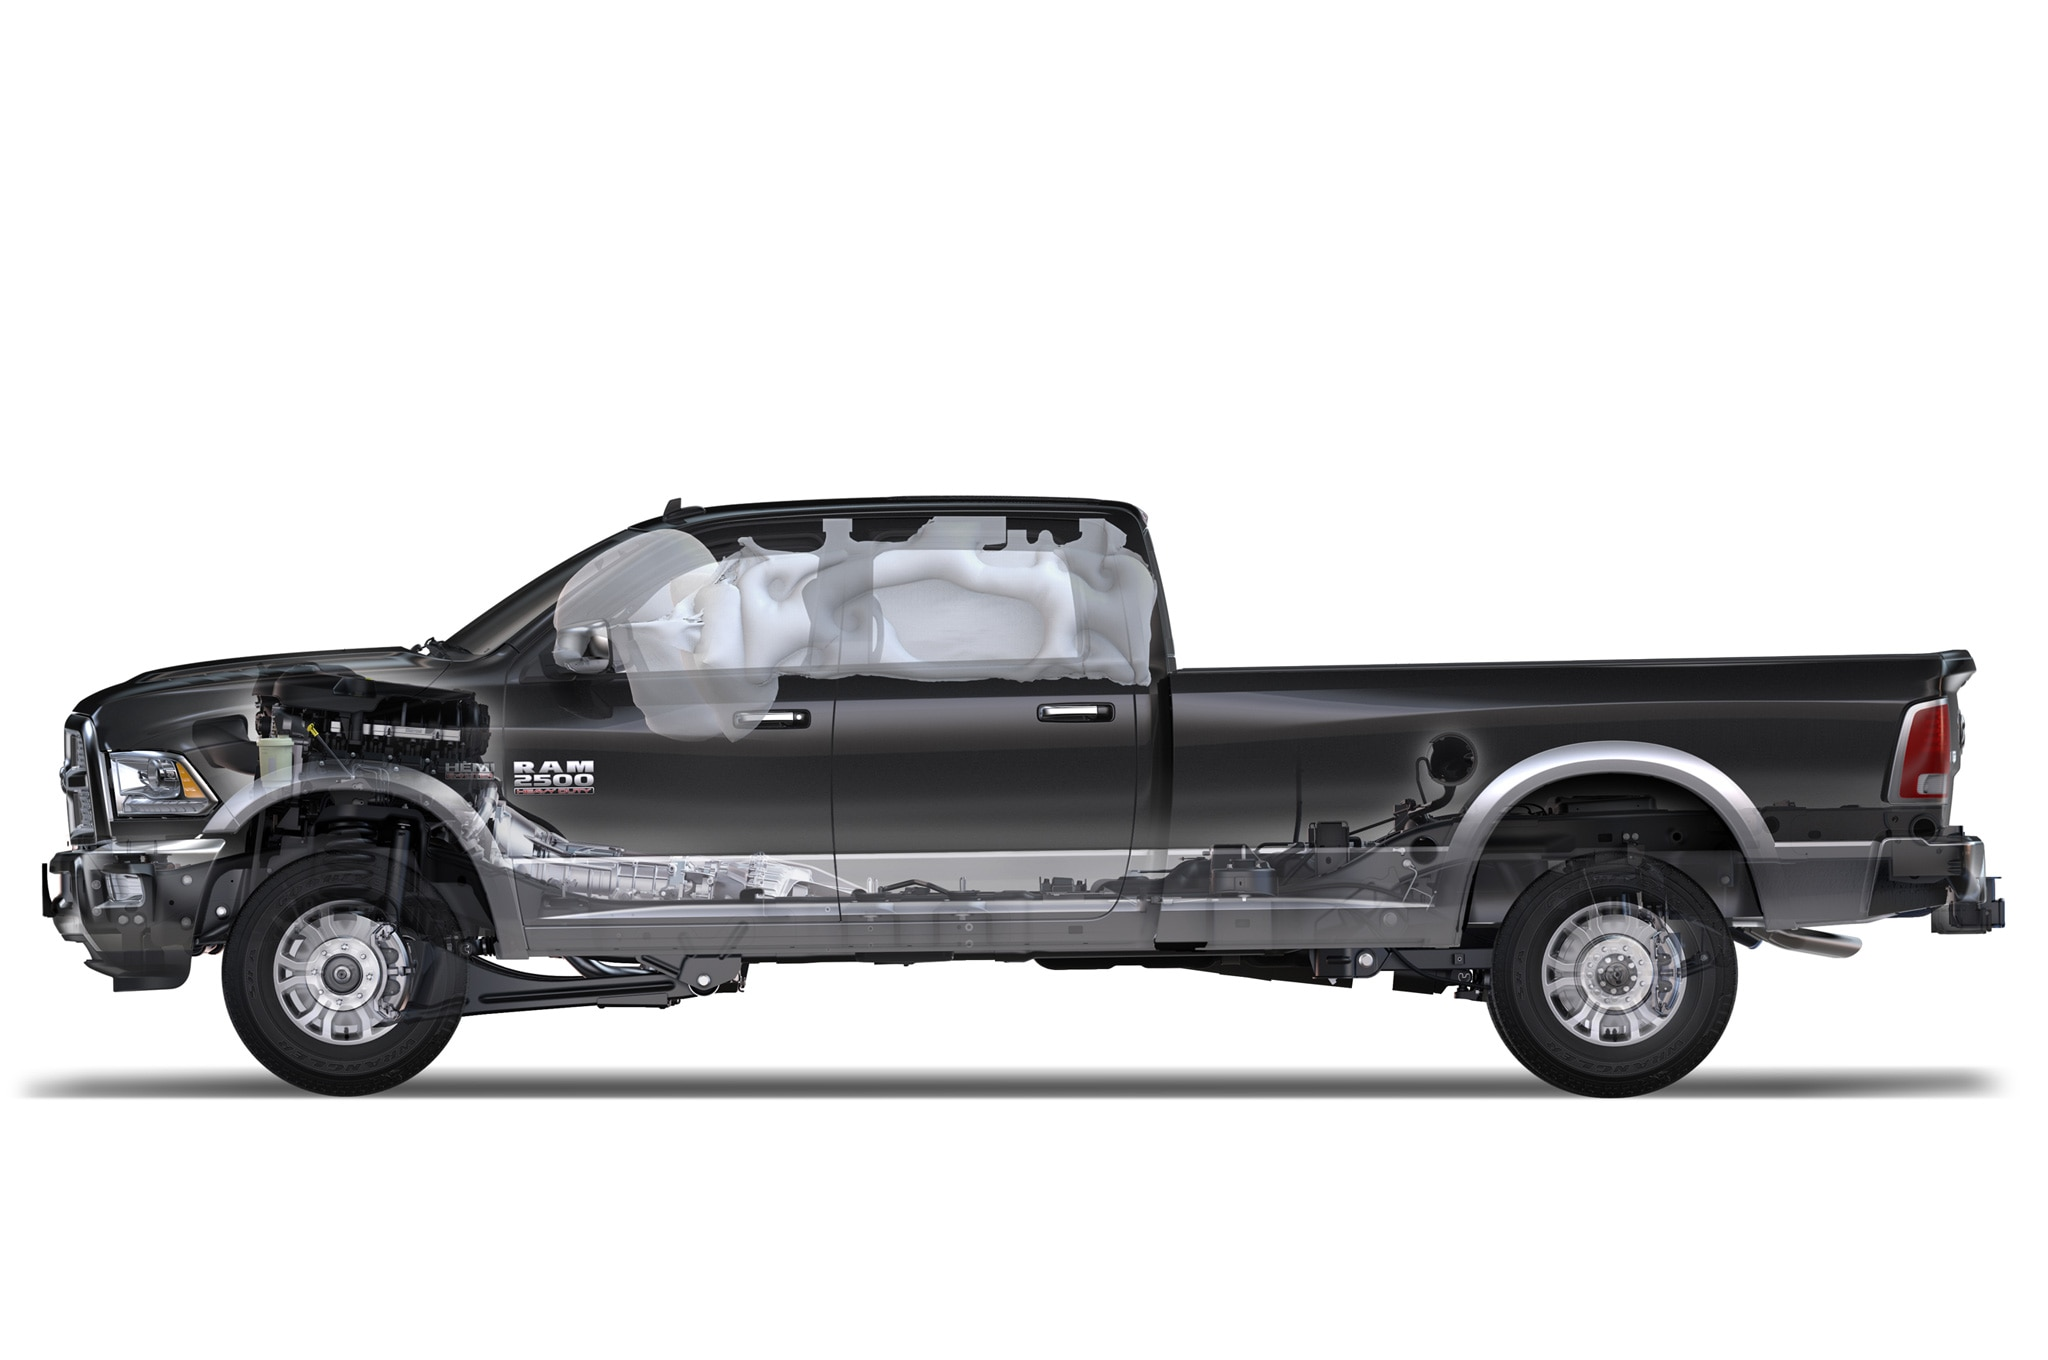 2014 Ram Heavy Duty Pickups Upgraded, Gain Air Suspension